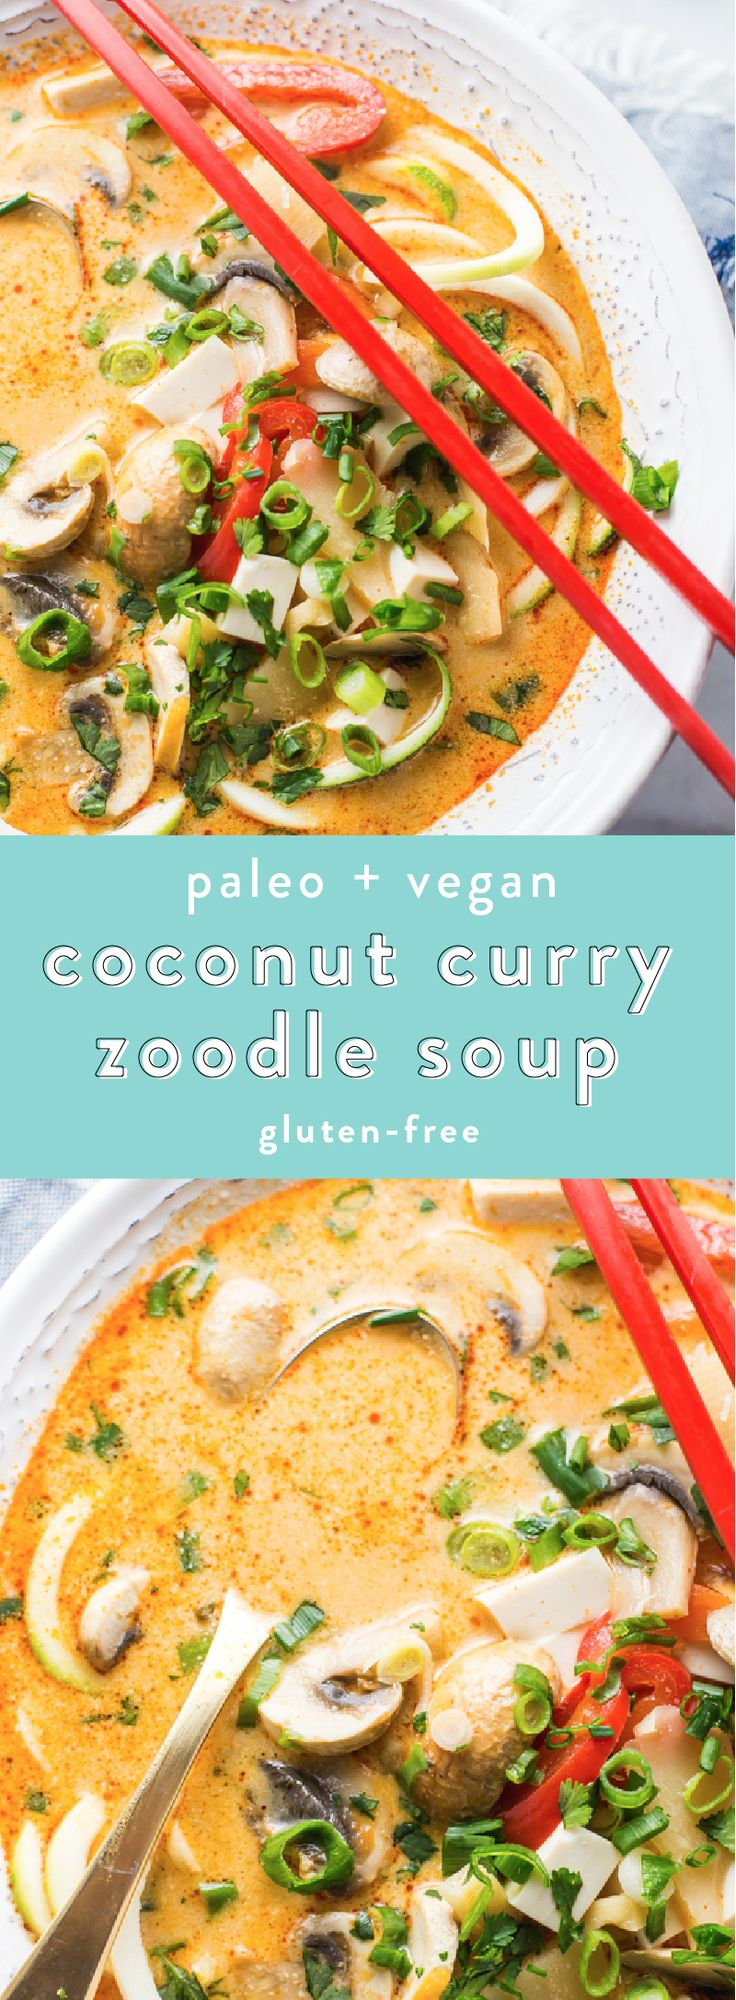 Paleo Vegan Paleo Coconut Curry Zoodle Soup #GlutenFree | 40 Aprons